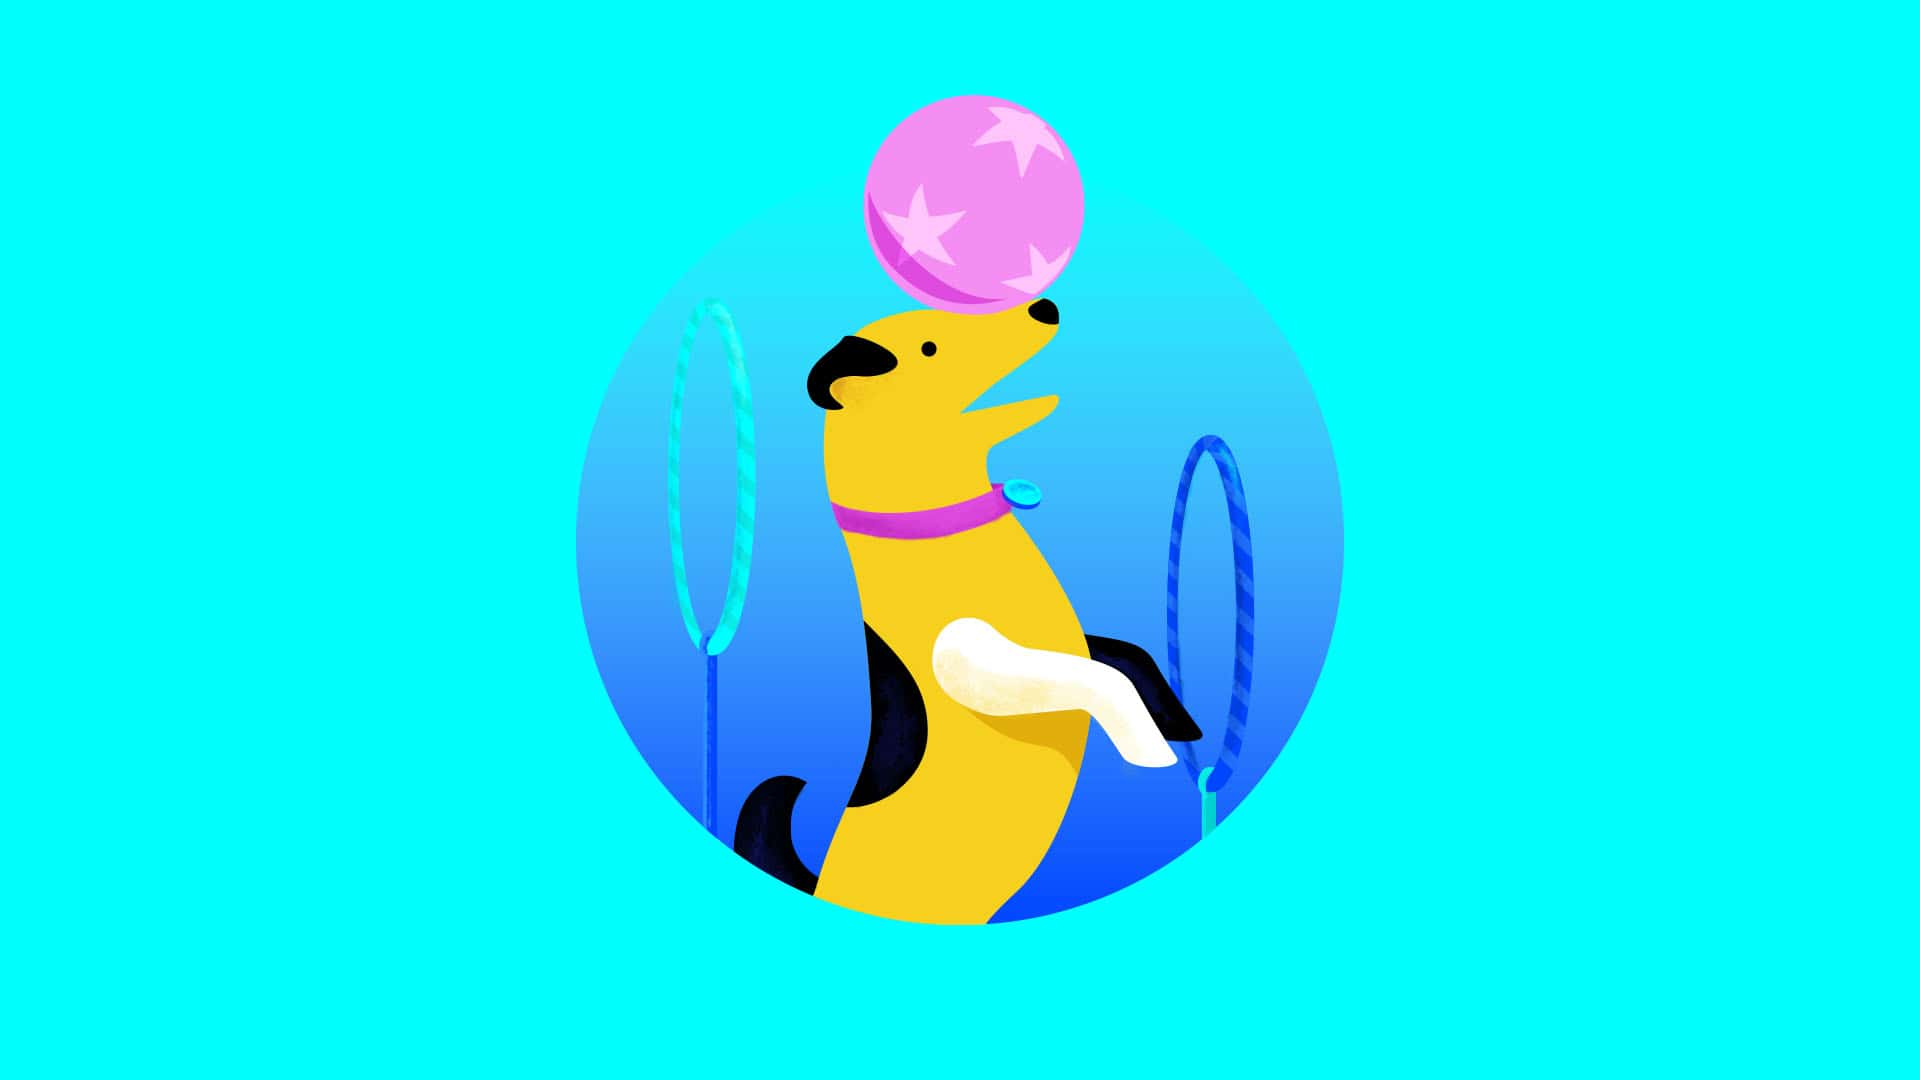 Illustration of a dog doing a trick